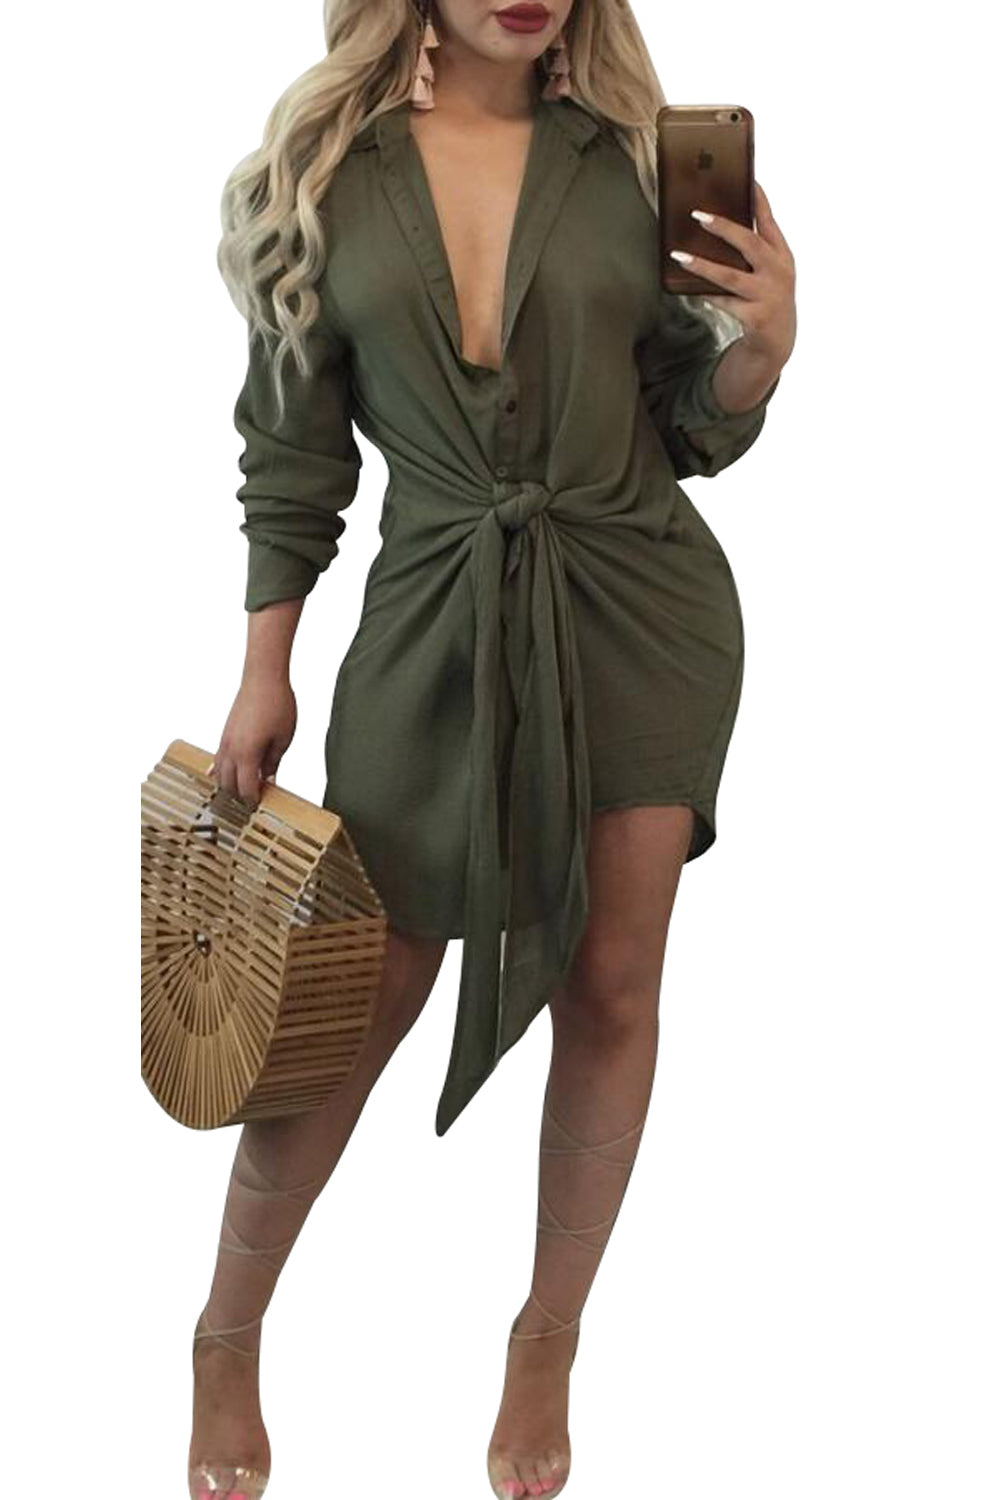 Chicloth Army Green Knot Tie Accent Button Down Shirtdress - S / Army Green